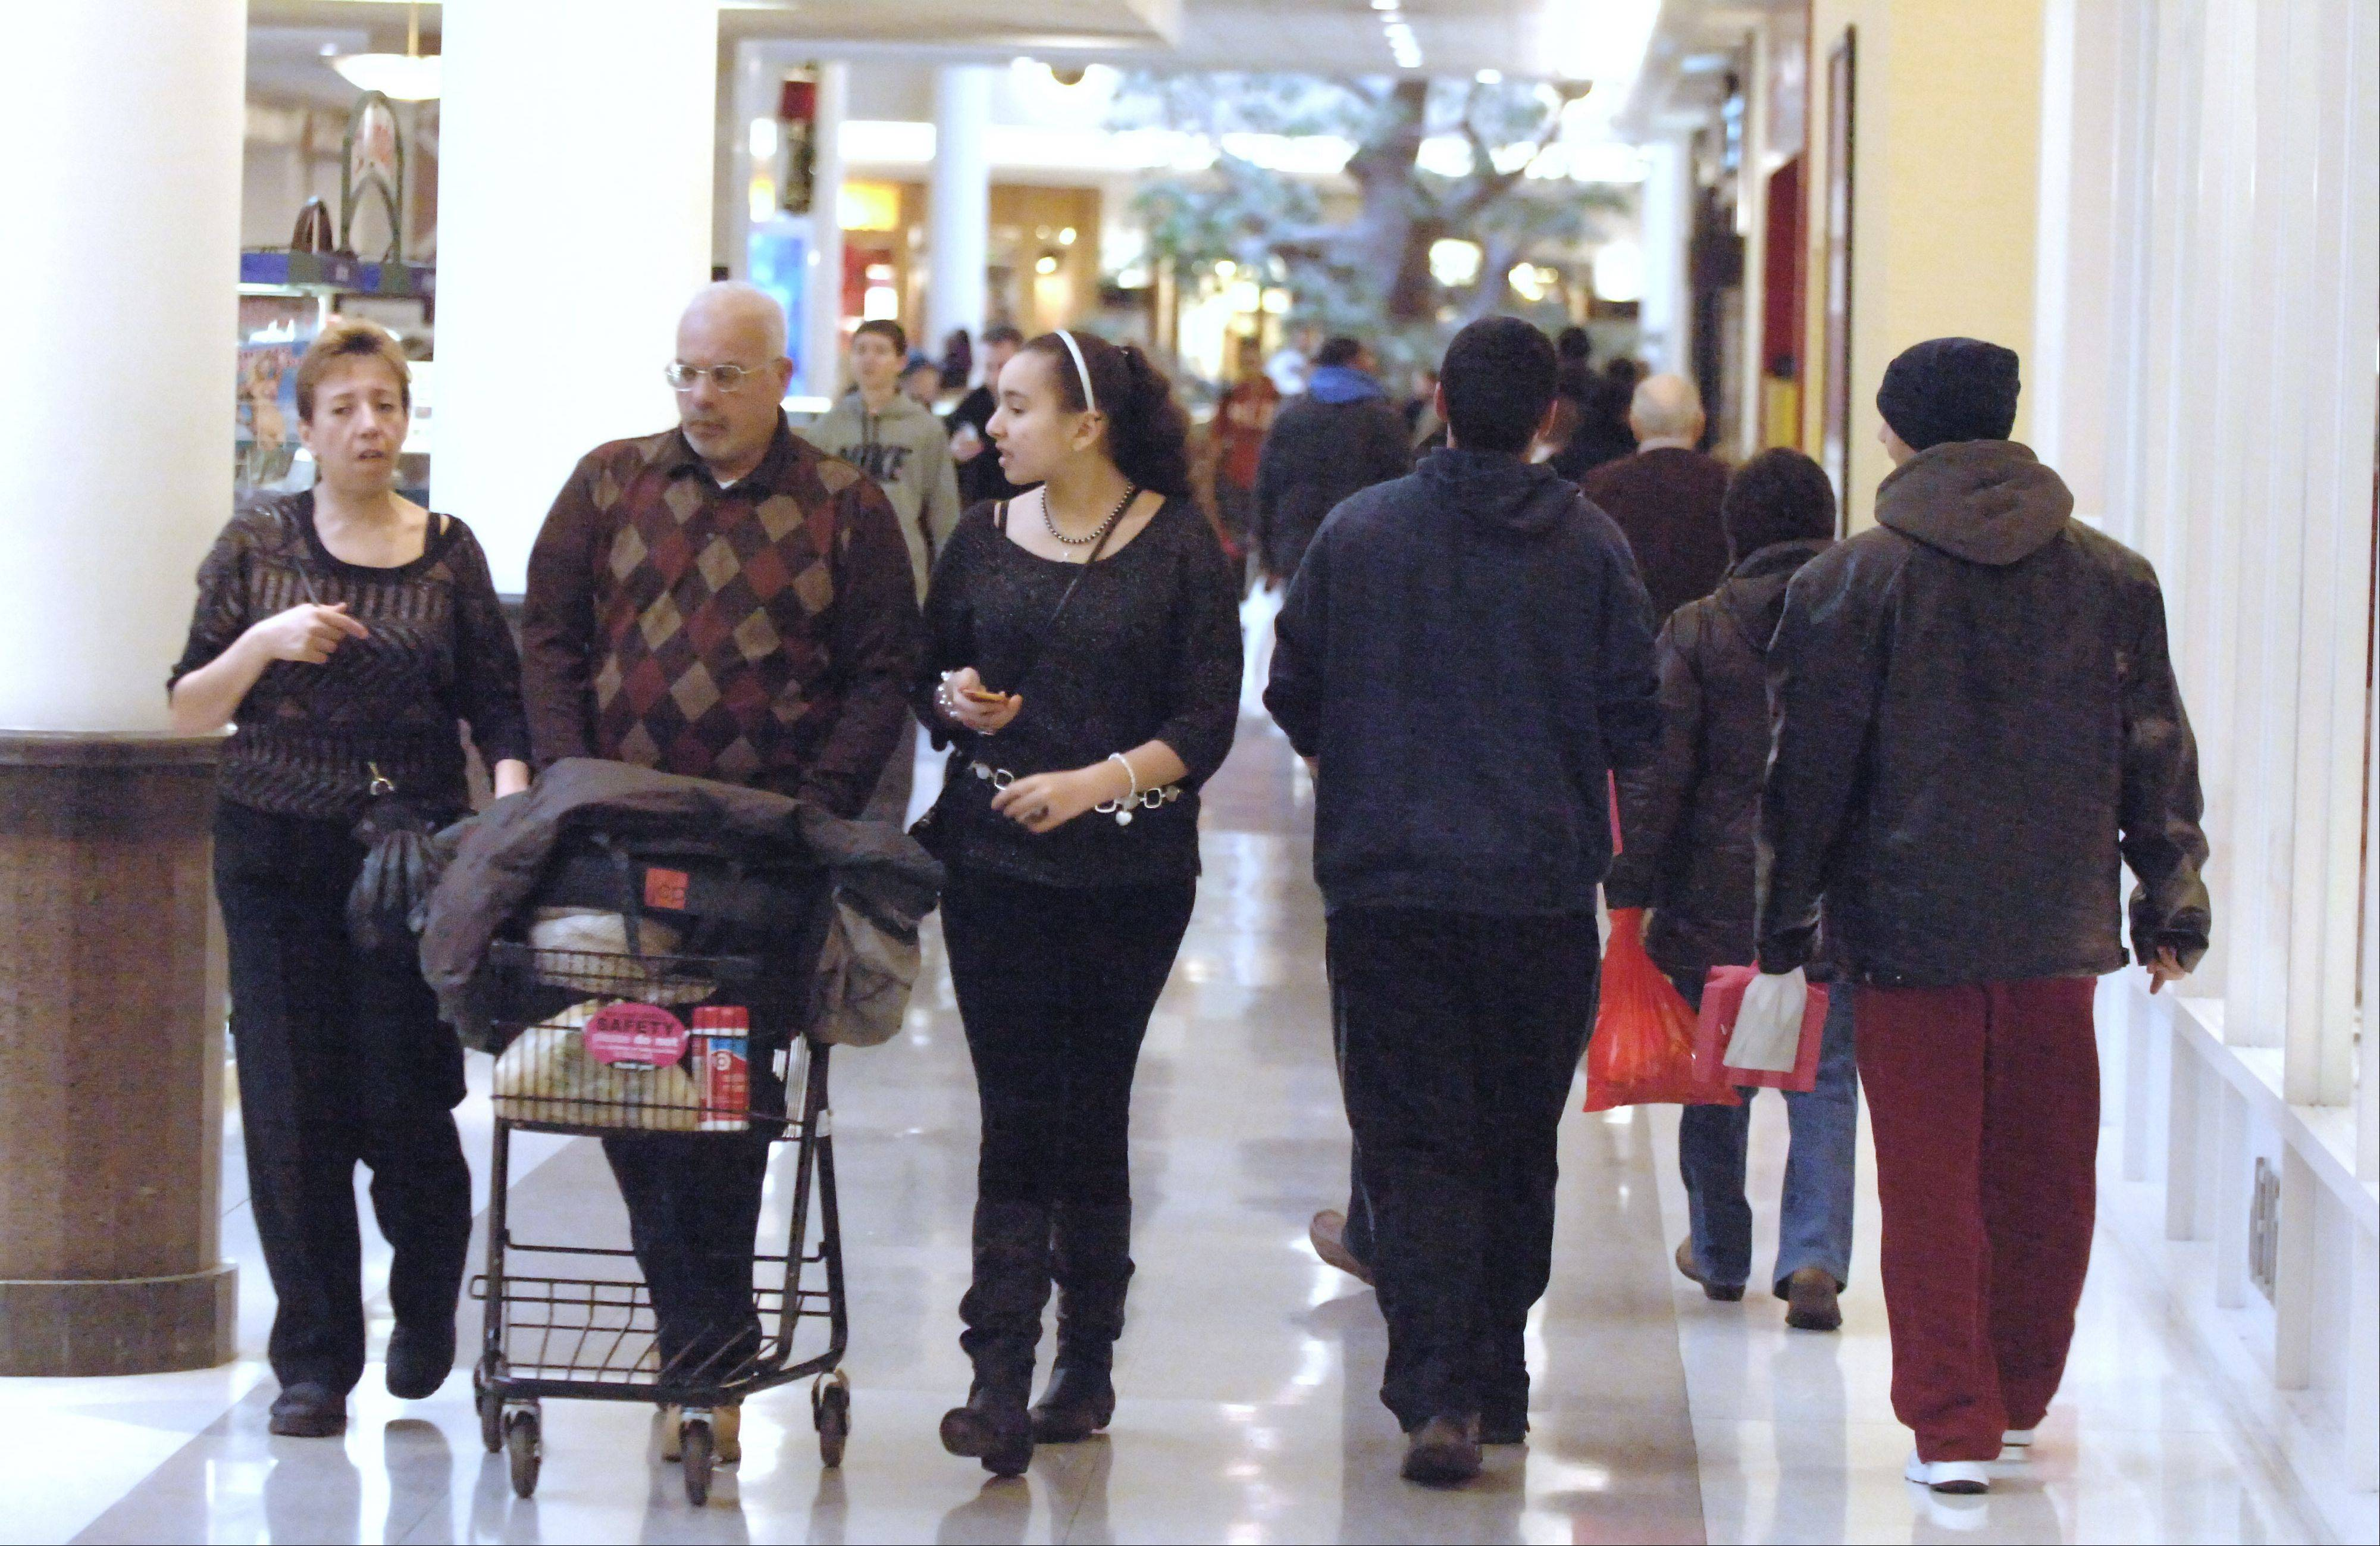 Last-minute shoppers scrambled Monday afternoon to find that special gift or stocking stuffer at Yorktown Mall in Lombard.